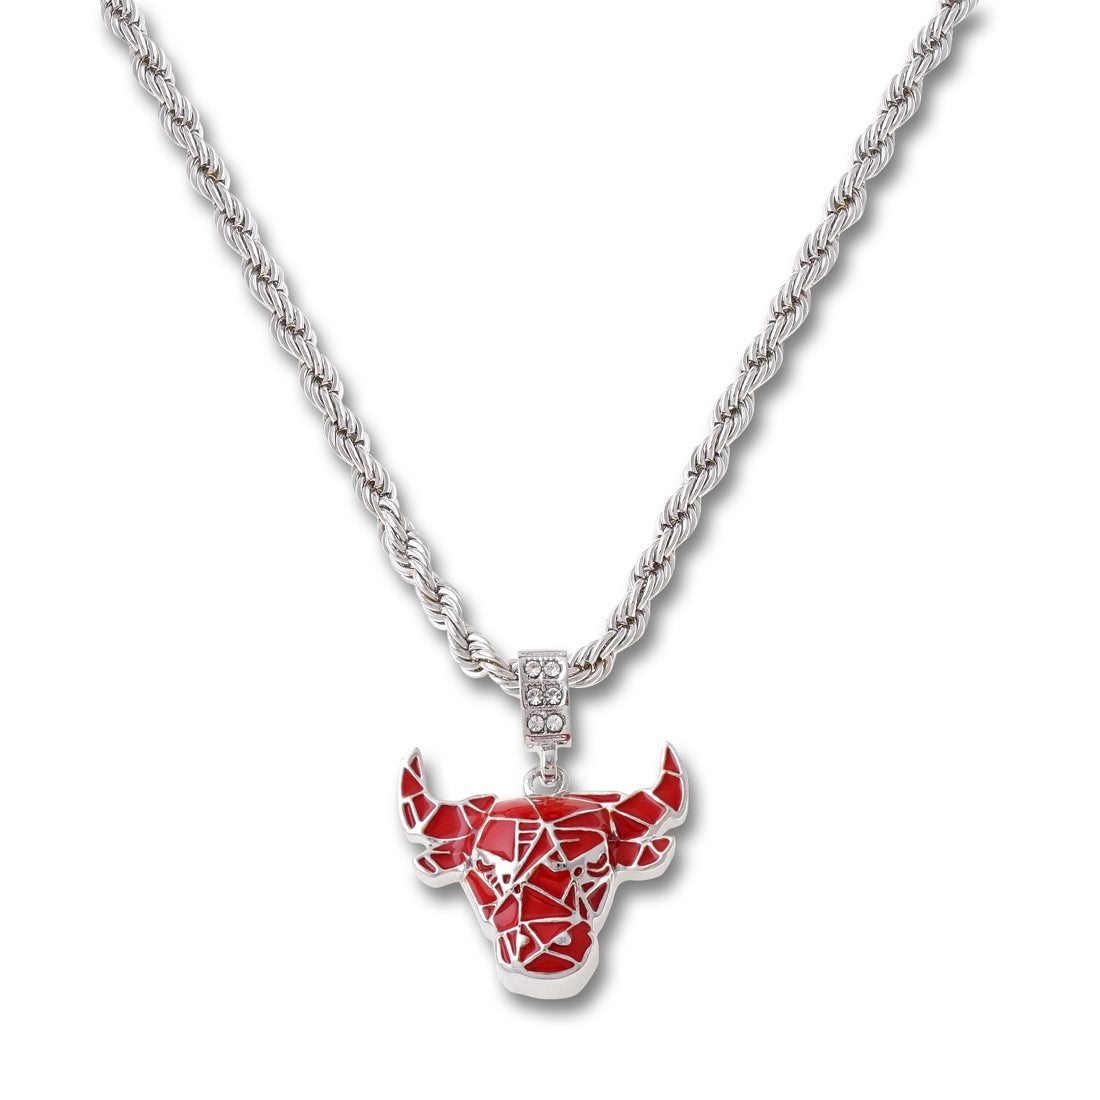 SILVER Bull Pendant Necklace - URBANCREWS